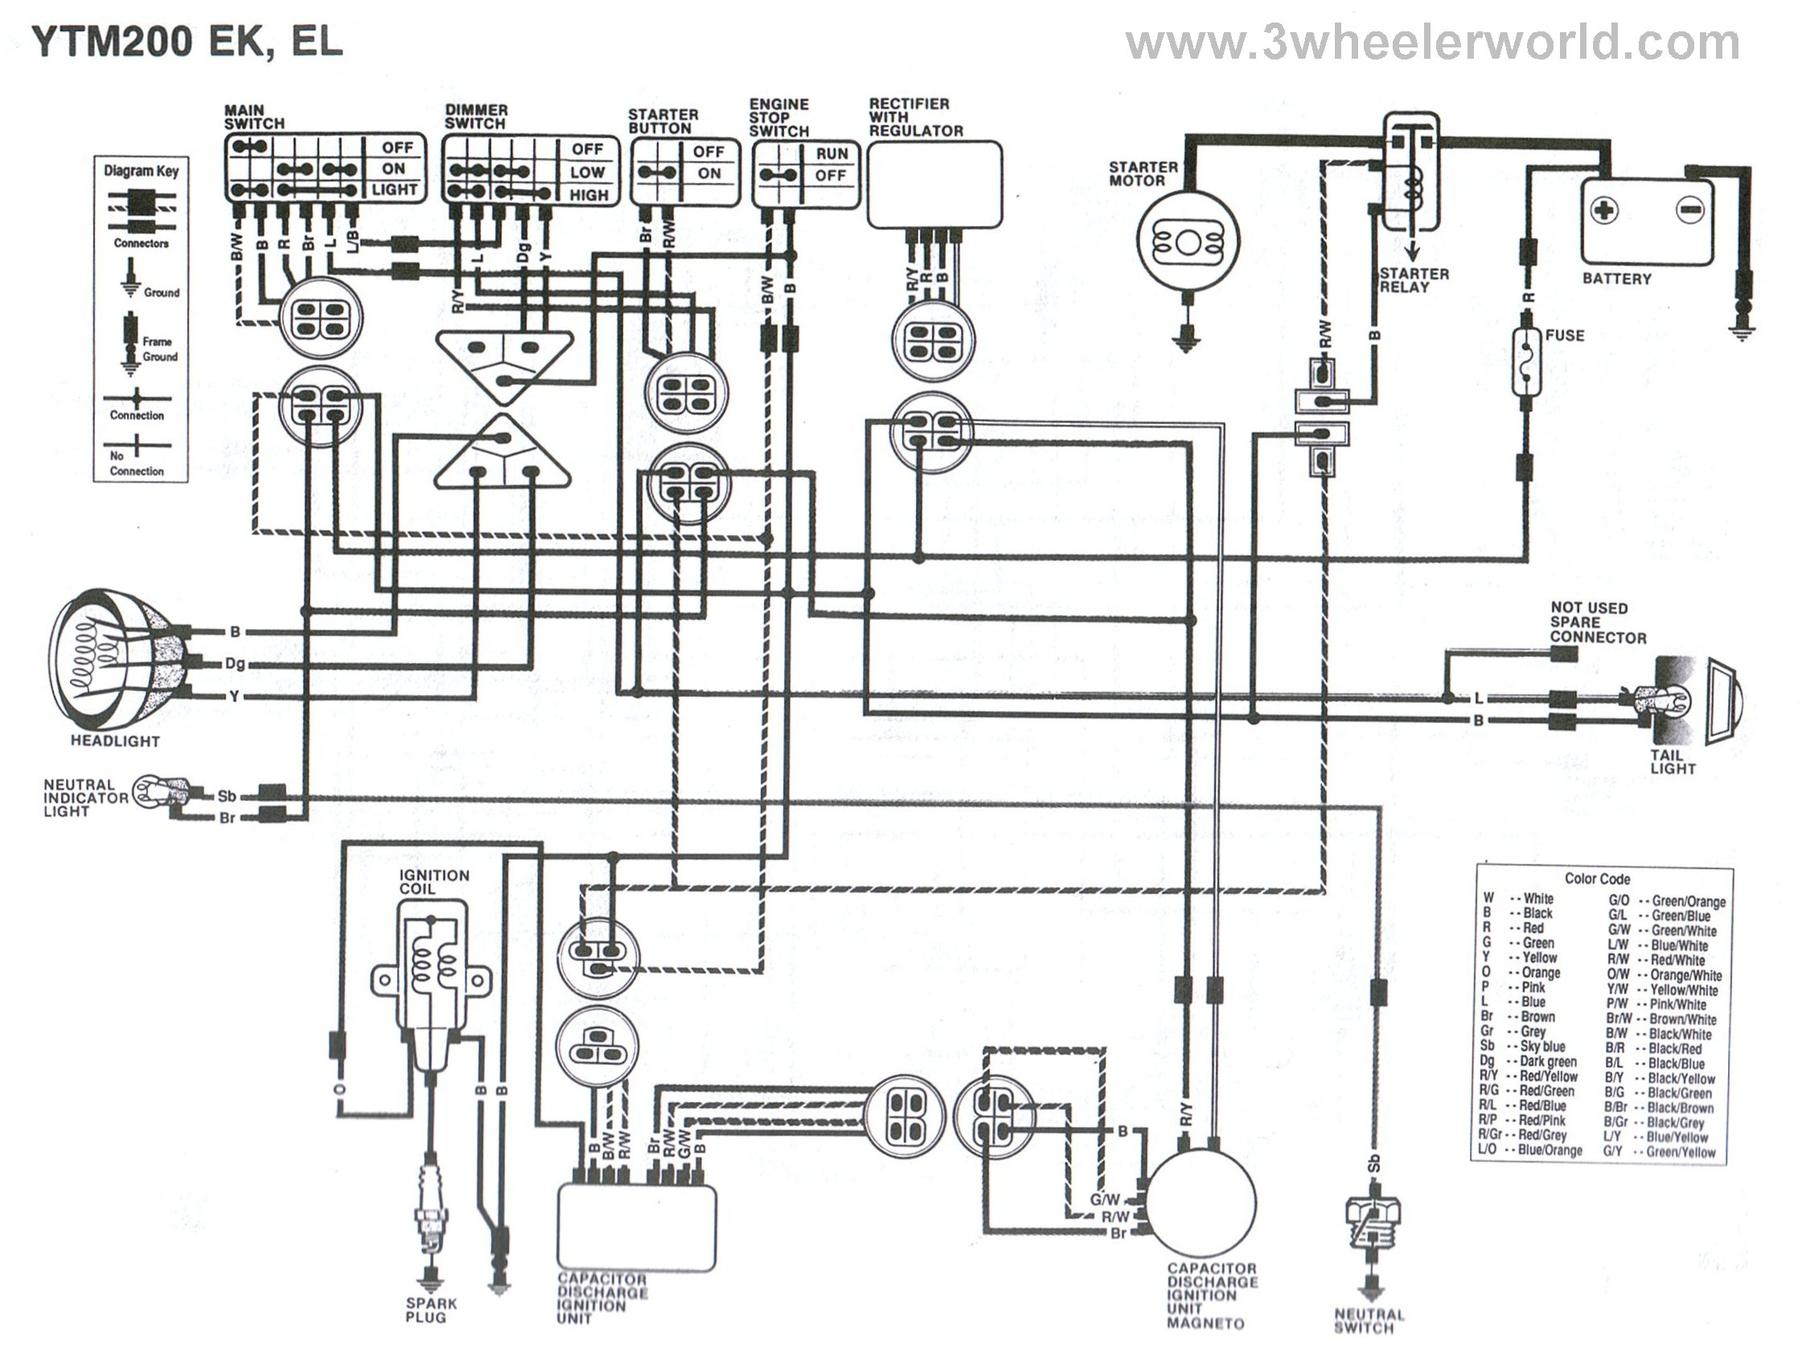 wiring diagram for honda with 188 Yamaha Wiring Diagram Section on 1968 Mustang Wiring Diagram Vacuum Schematics as well Vtx 1800c Diode Fix in addition Oxygen sensor location additionally Need Oe Wiring Schematics 3141043 further 2003 Lincoln Navigator 5 4l Serpentine Belt Diagram.